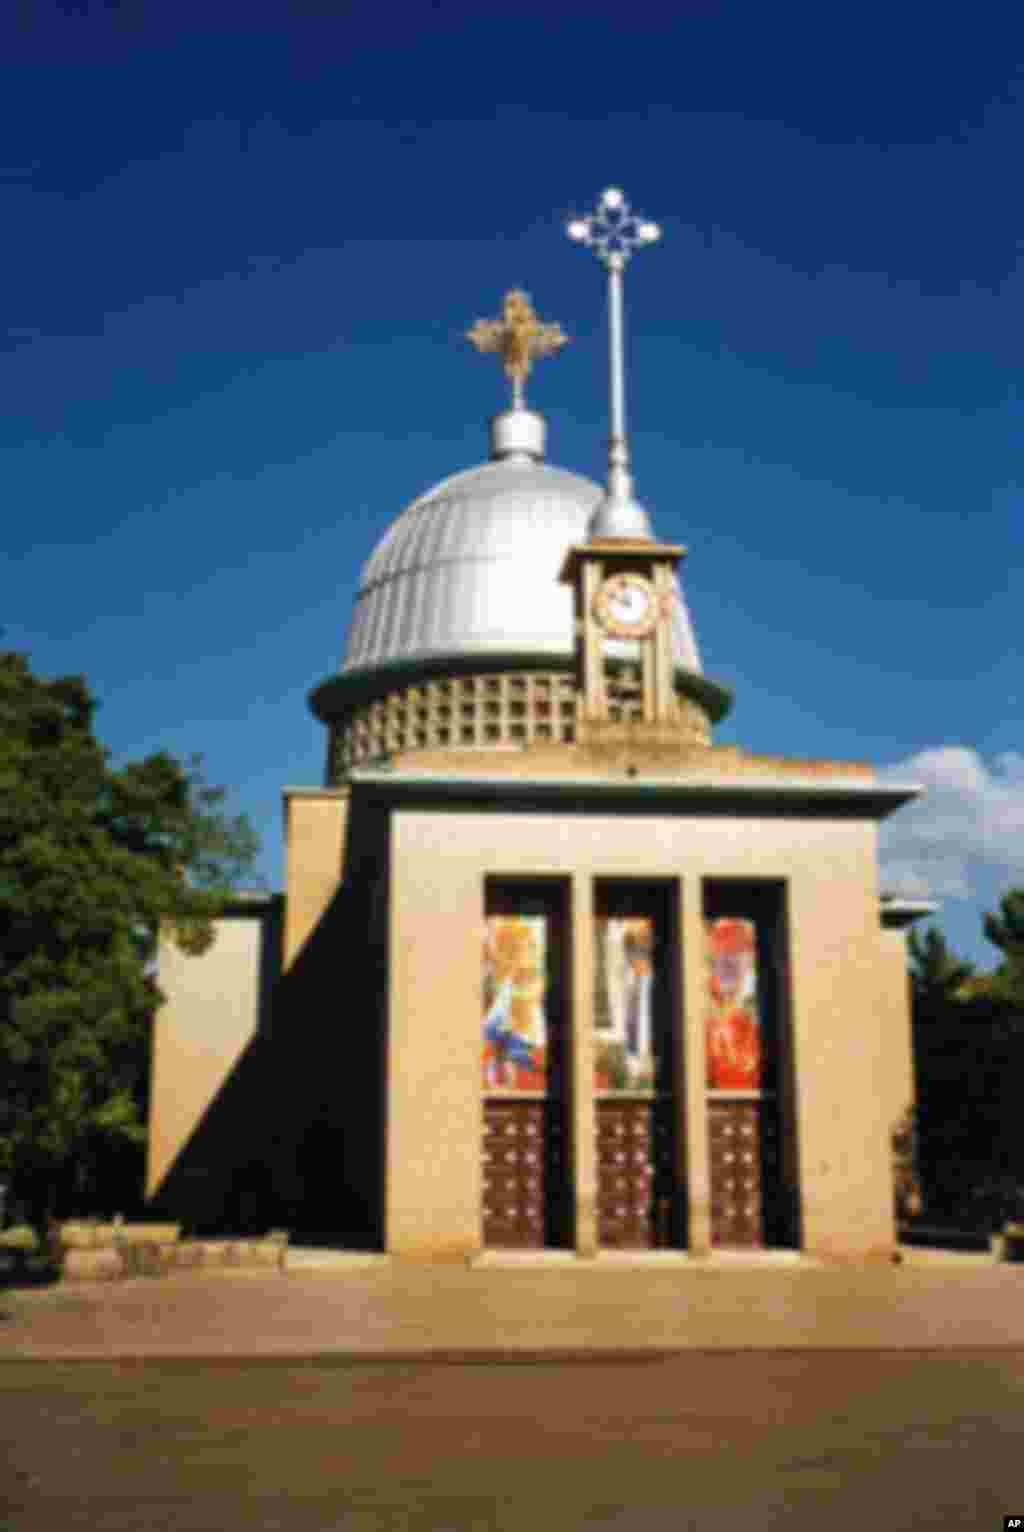 Churches and shrines, such as this one in Ethiopia, may be the first places to see a child with polio. Shrine keepers are trained in how to report the case to health authorities.